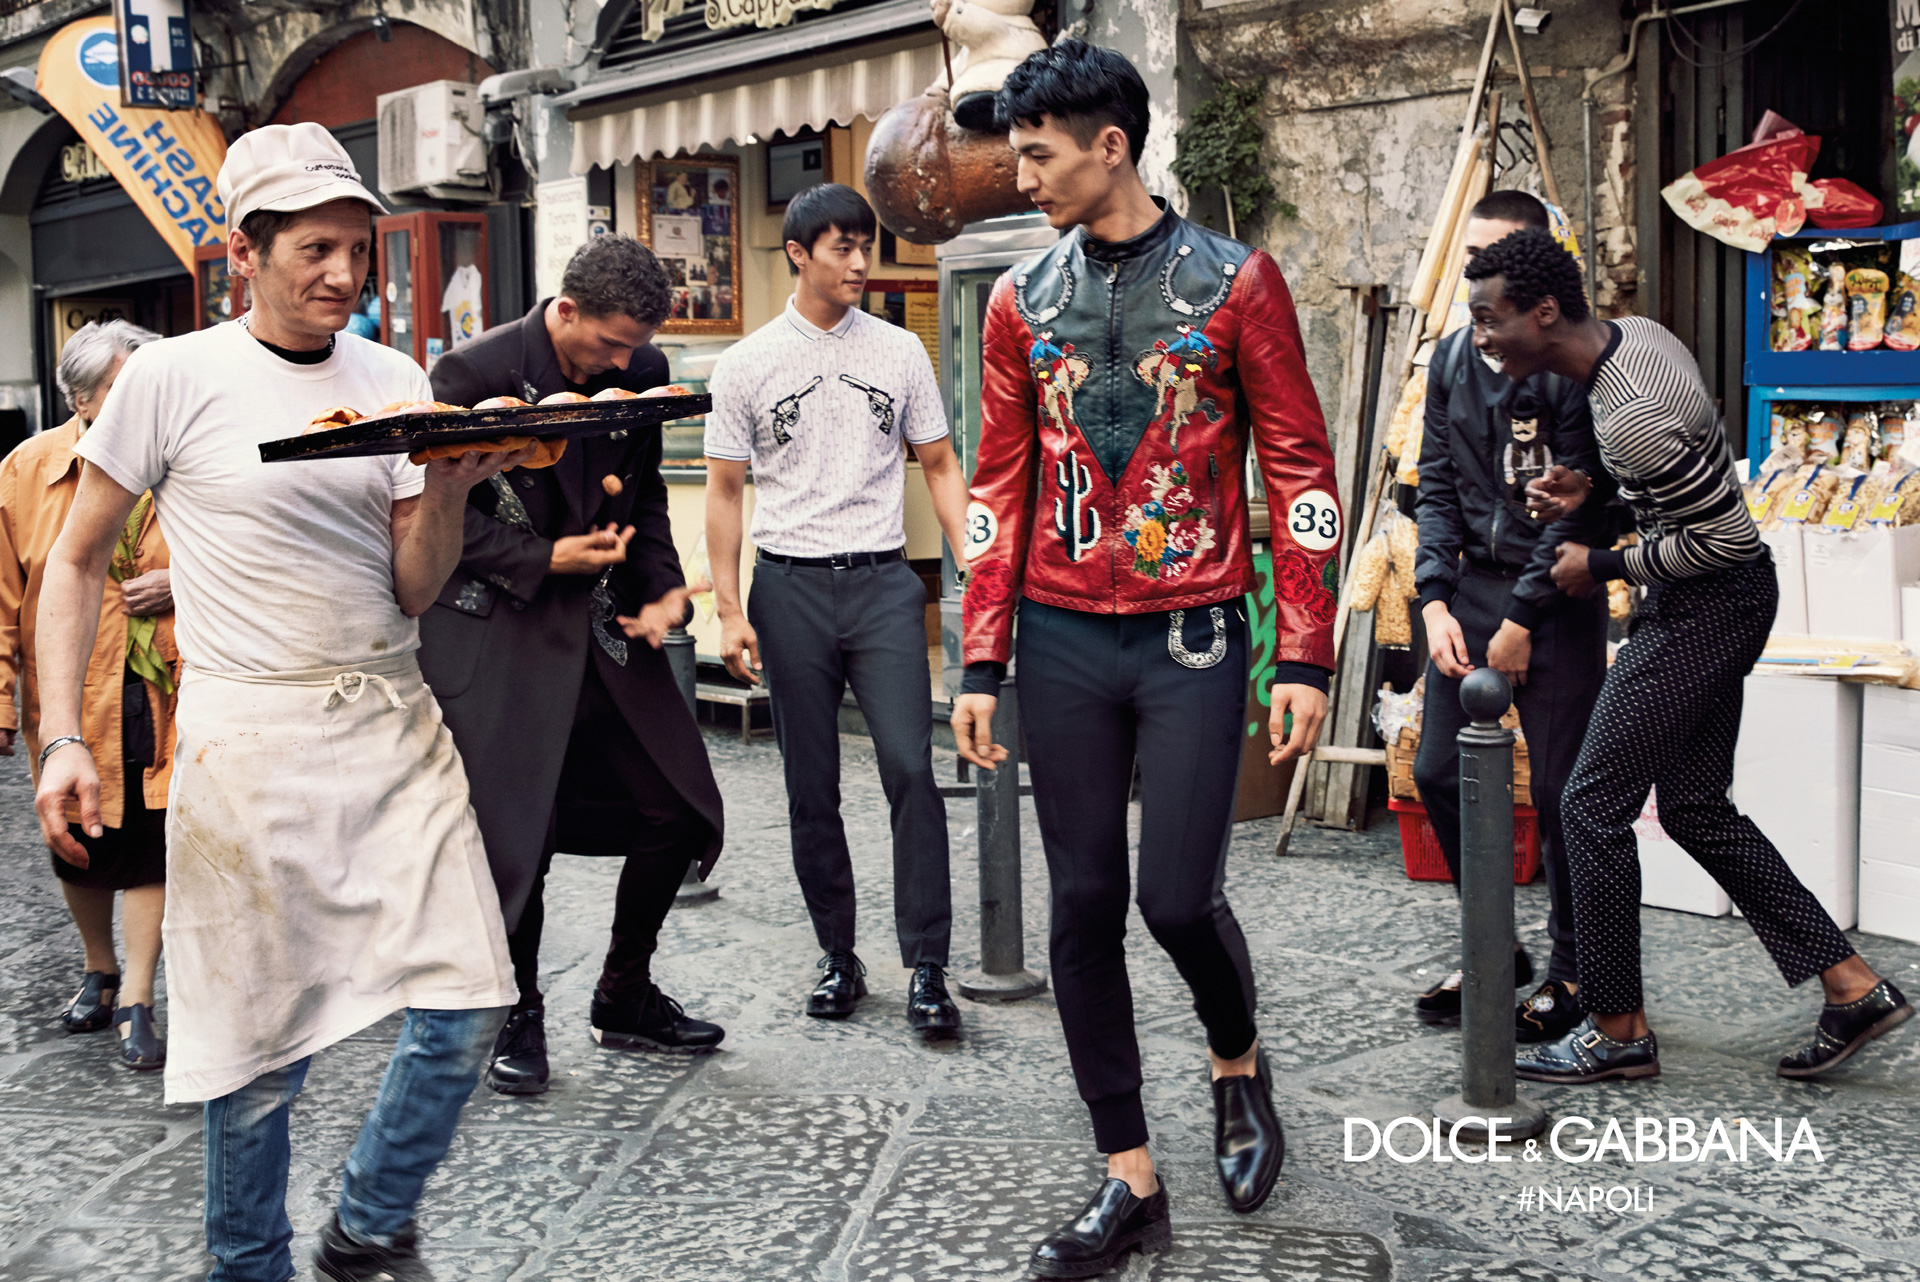 Dolce-Gabbana-Fall-Winter-2016-2017-Ad-Campaign-Naples-8